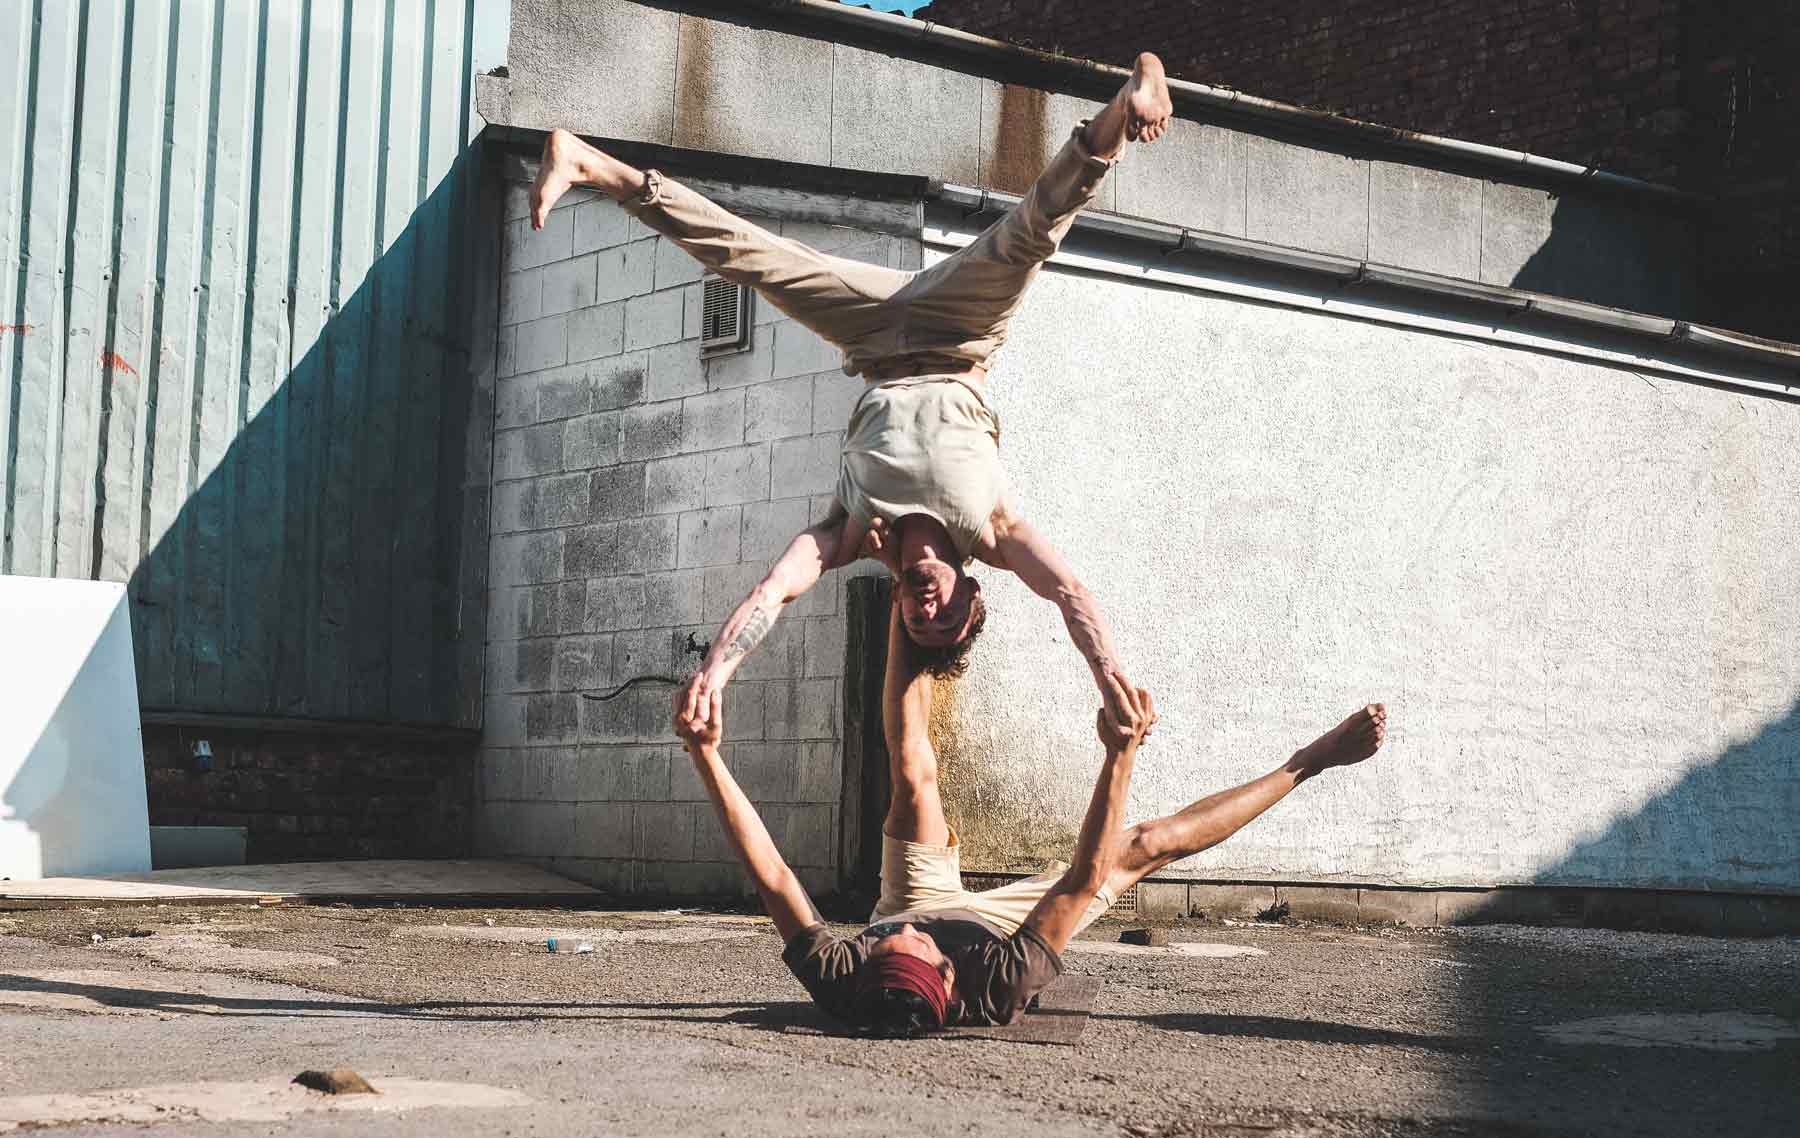 Two men doing acro yoga poses wearing so we flow...